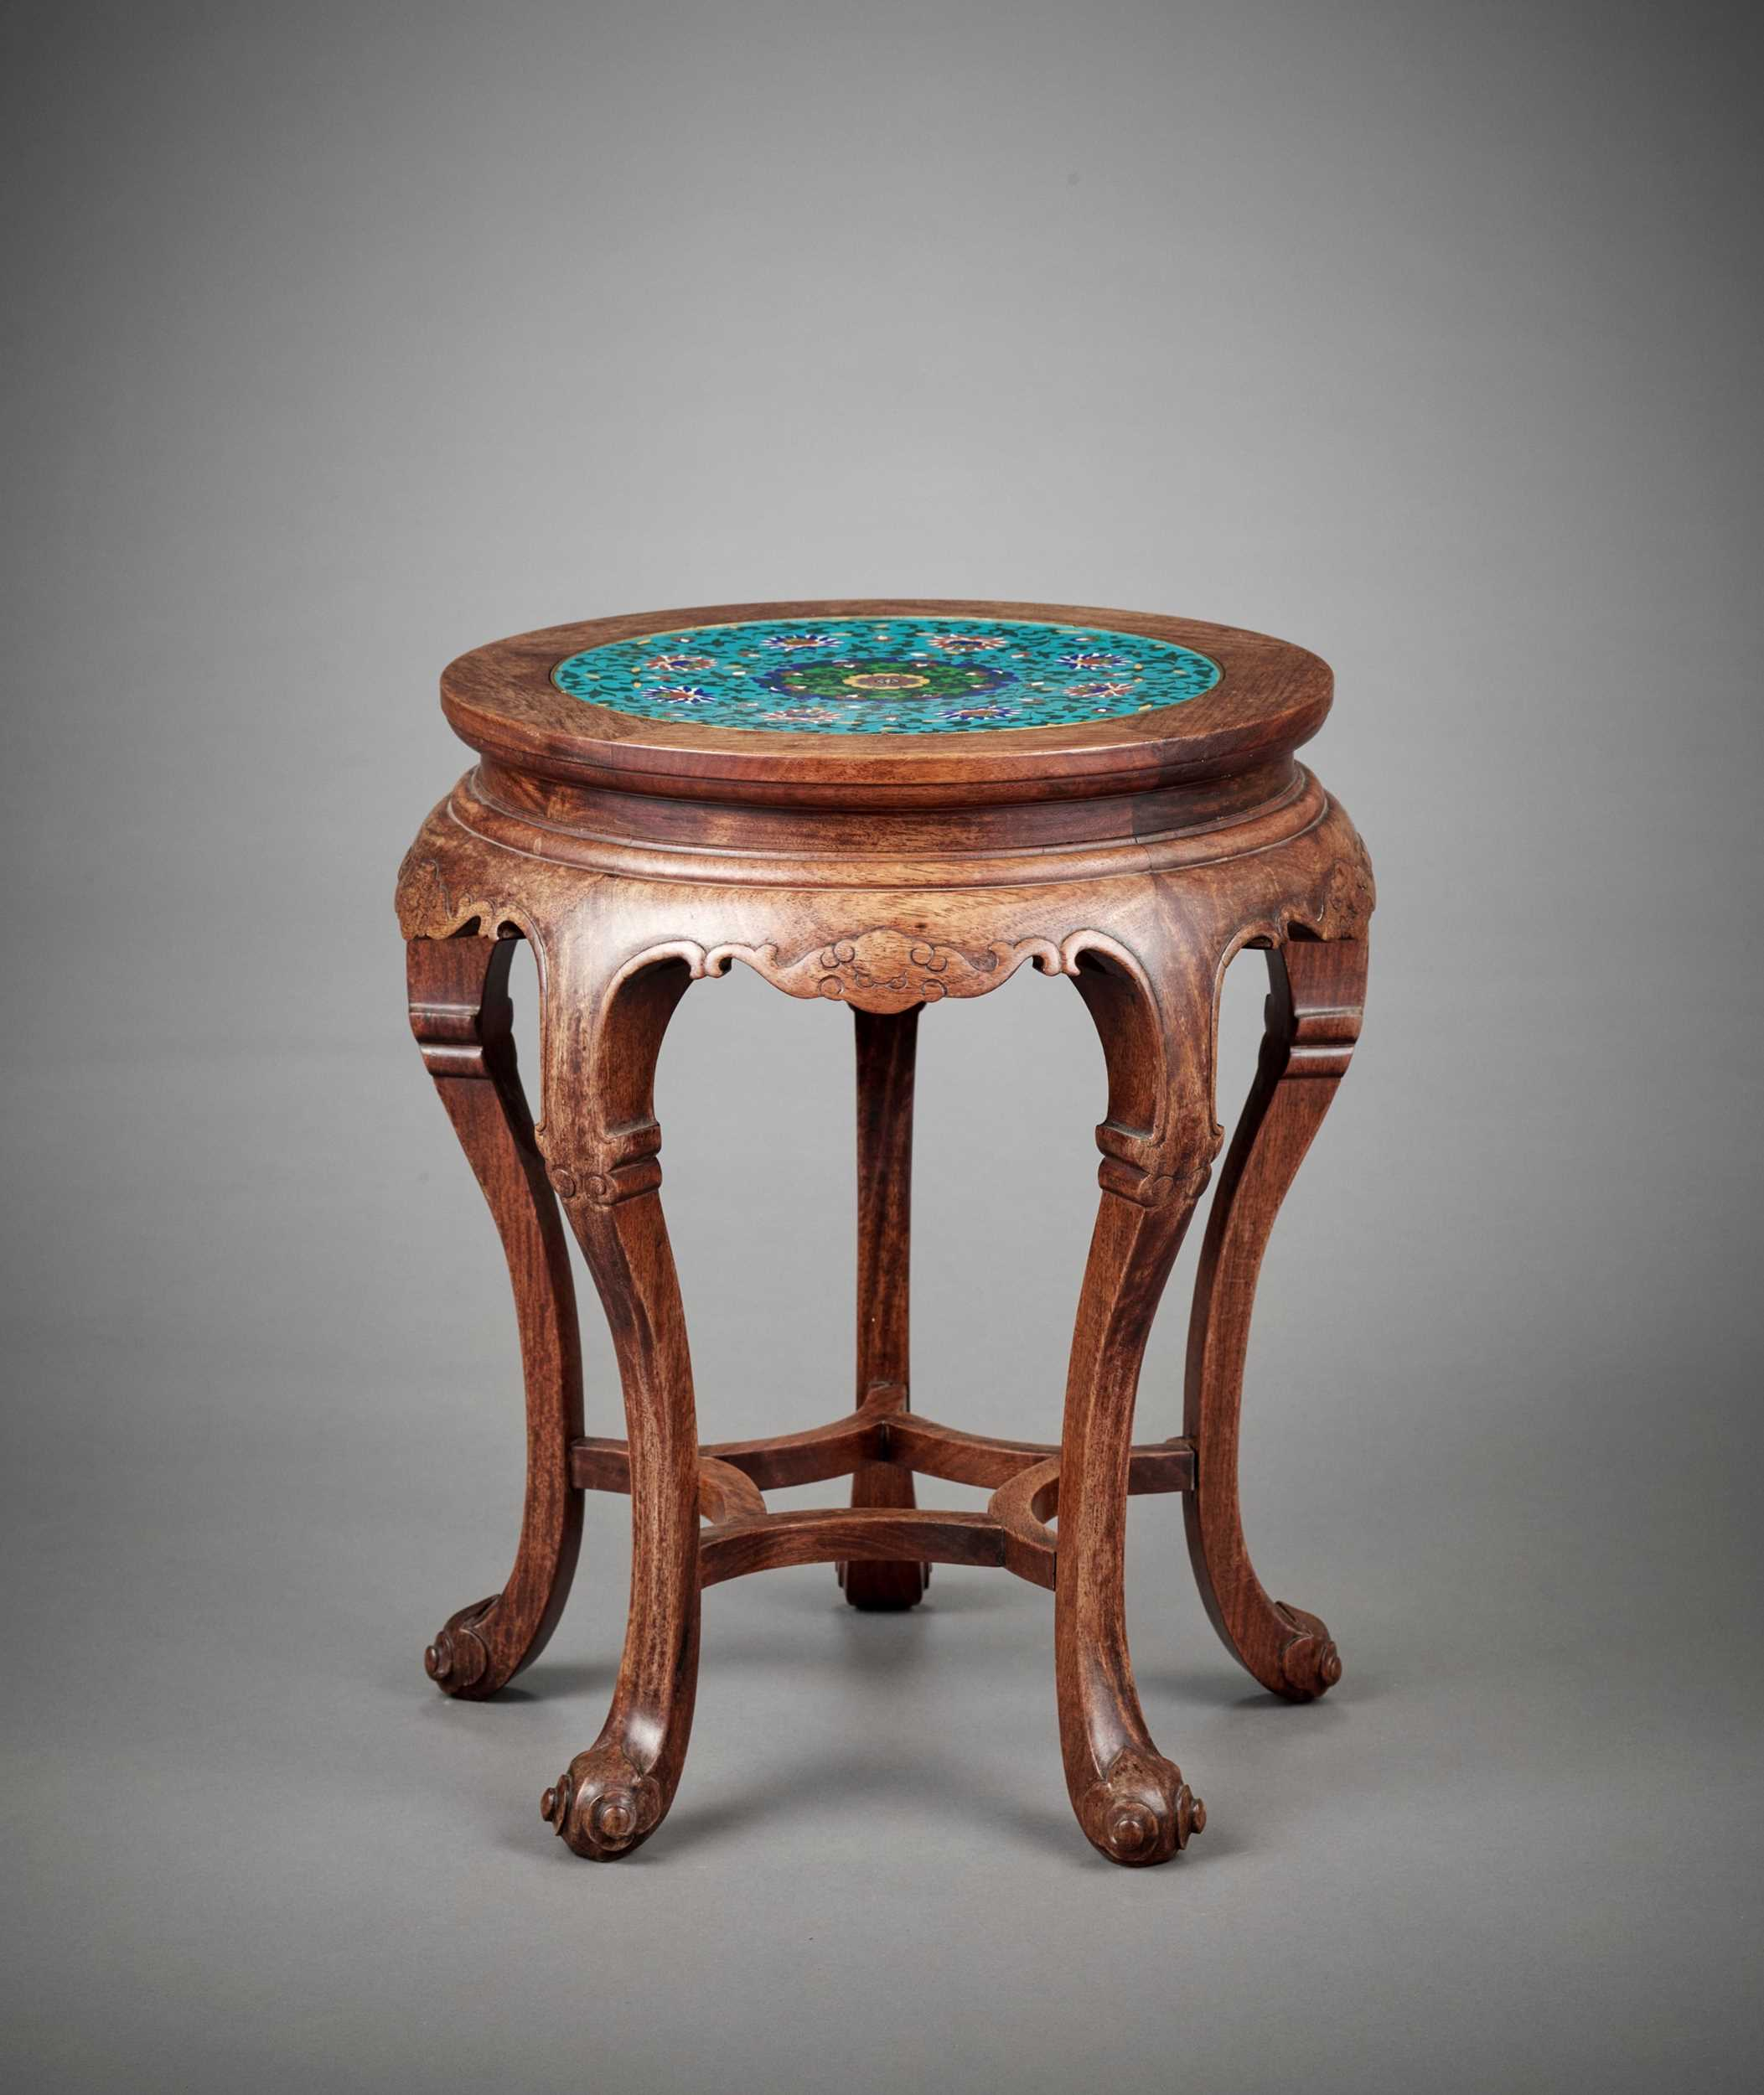 Lot 15 - A CLOISONNÉ ENAMEL-INSET HARDWOOD STAND, LATE QING TO REPUBLIC